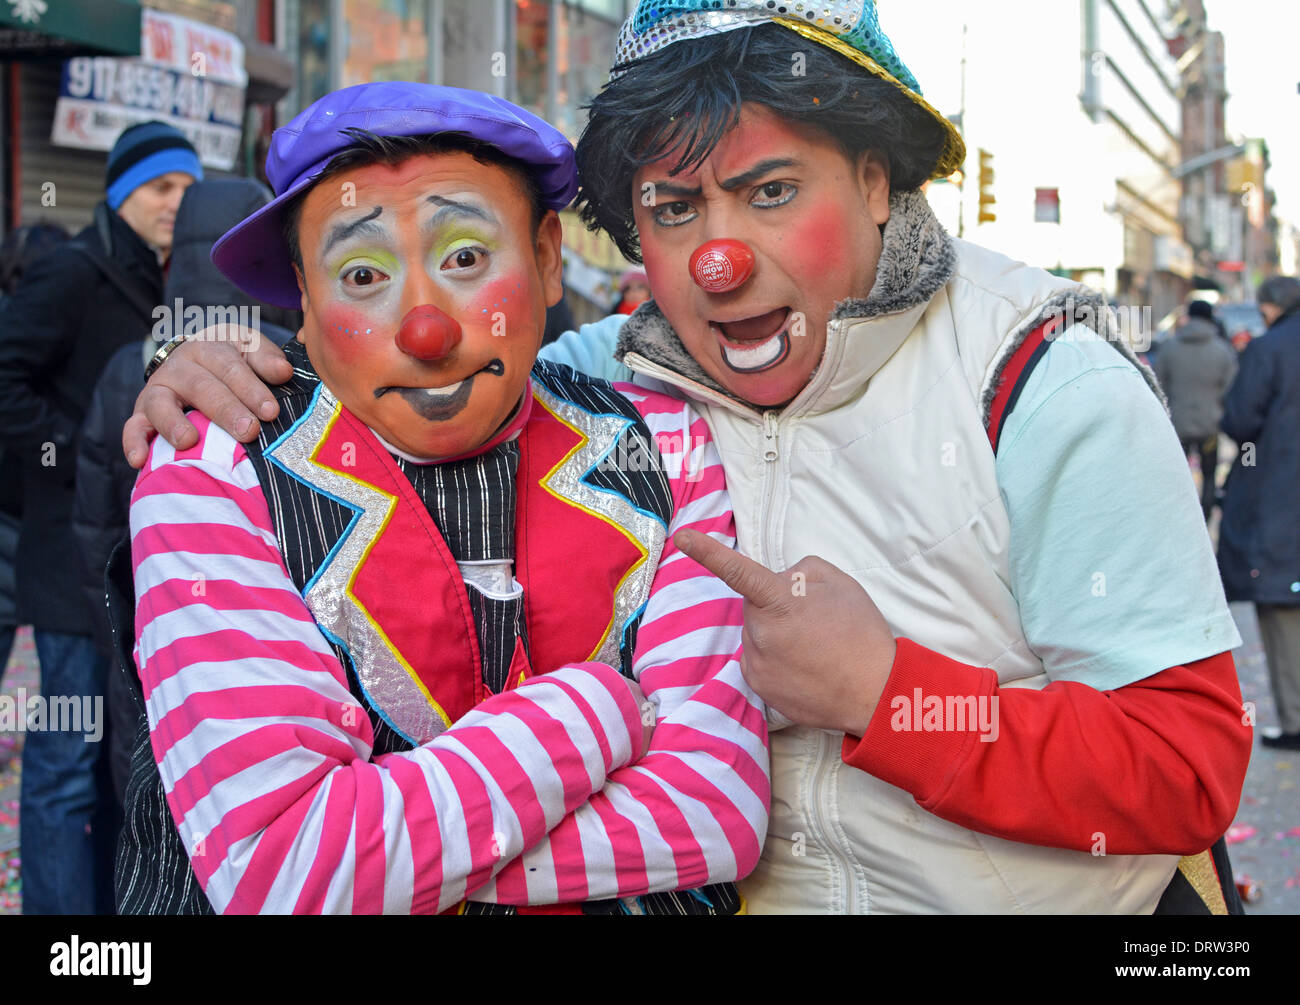 2 Mexican American clowns at the Chinese New Year parade on Mott Street in Chinatown, New York City. - Stock Image